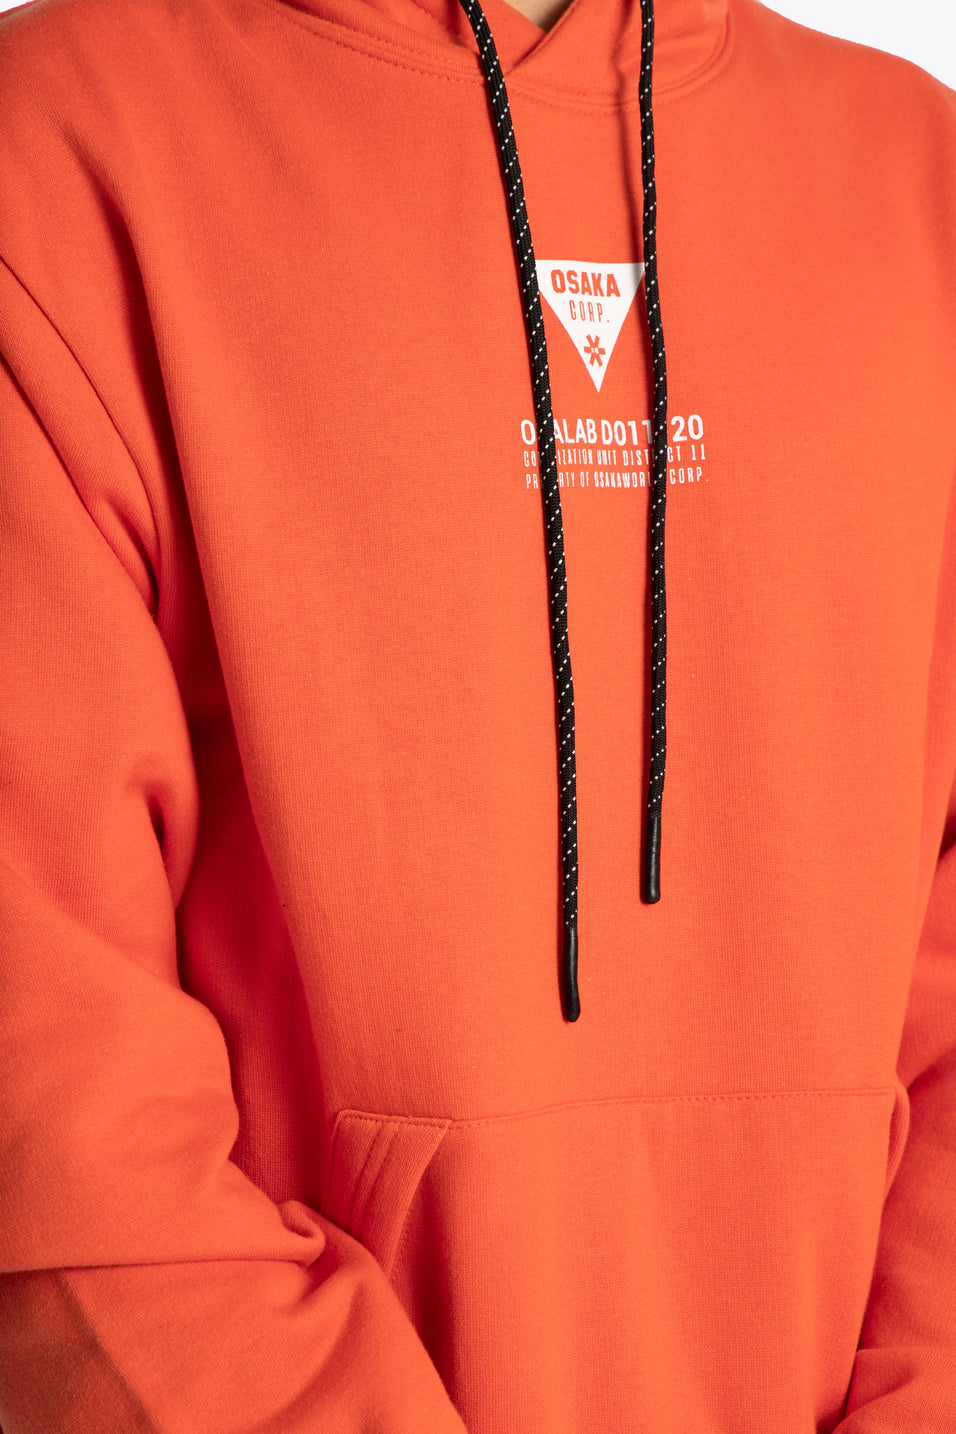 District 11 Hoodie - Orange - Unisex